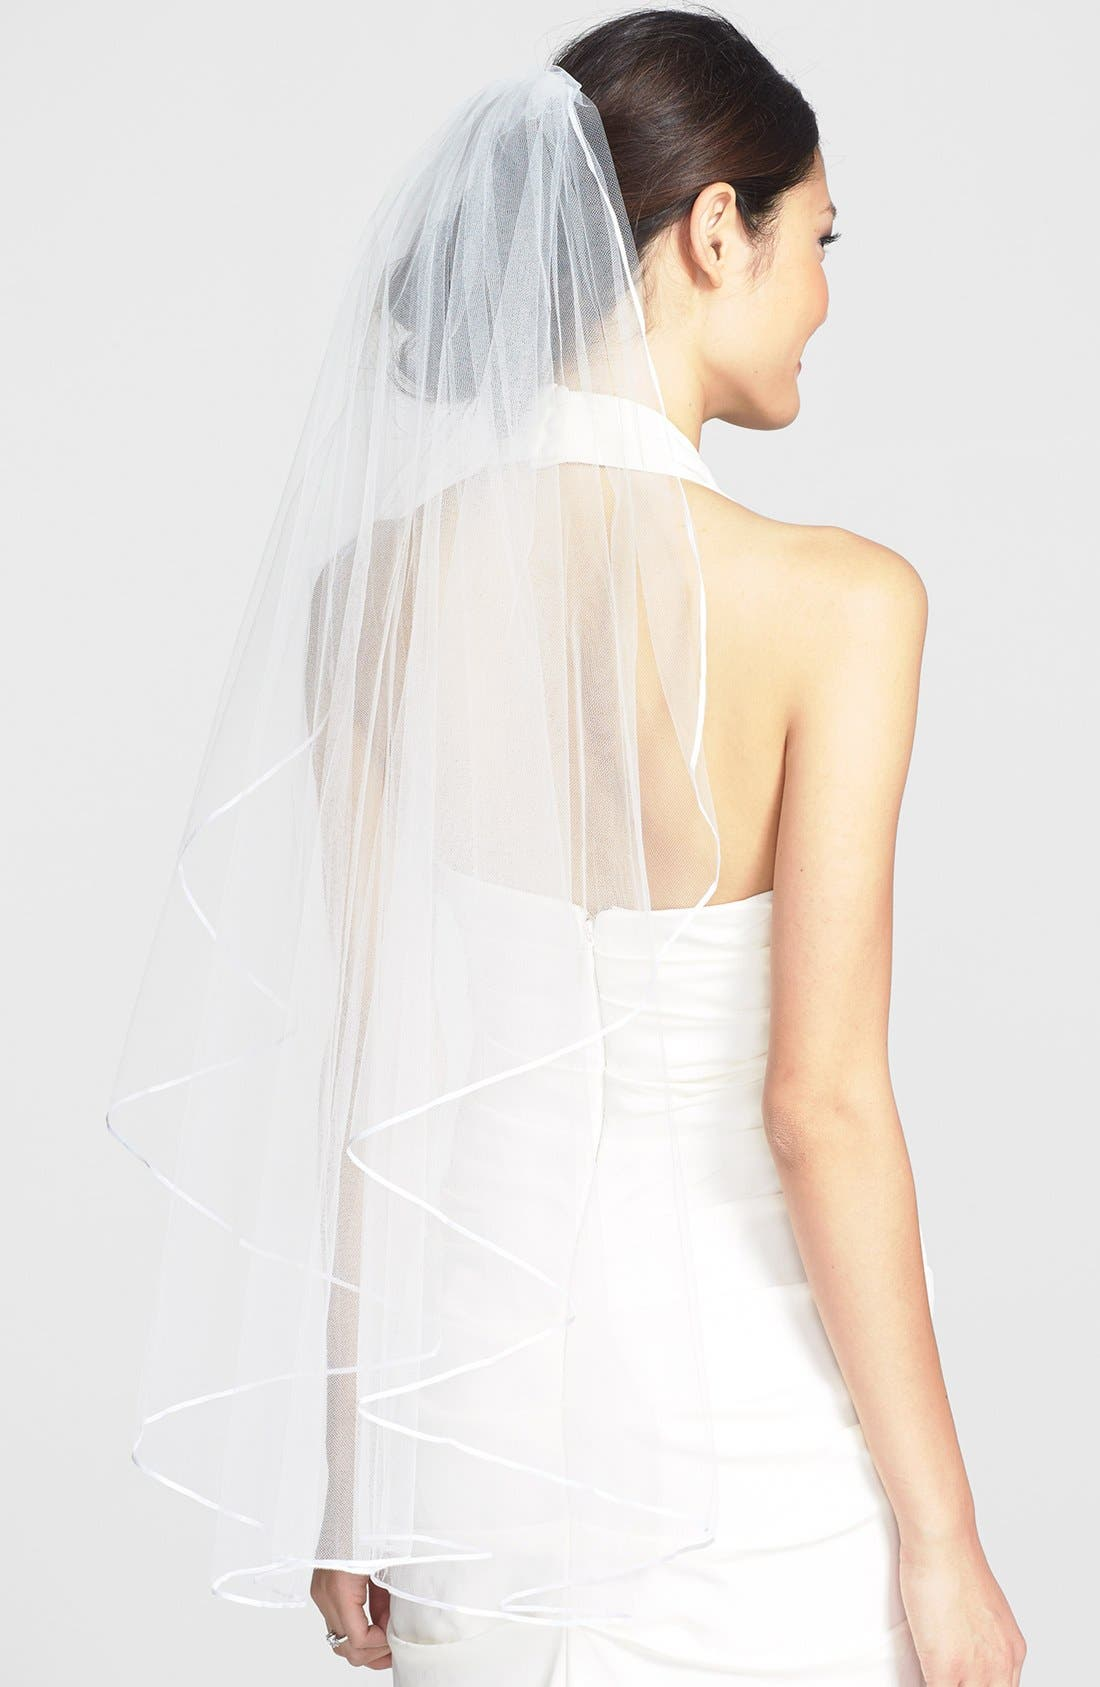 Wedding Belles New York 'Mable' Veil (Nordstrom Exclusive)